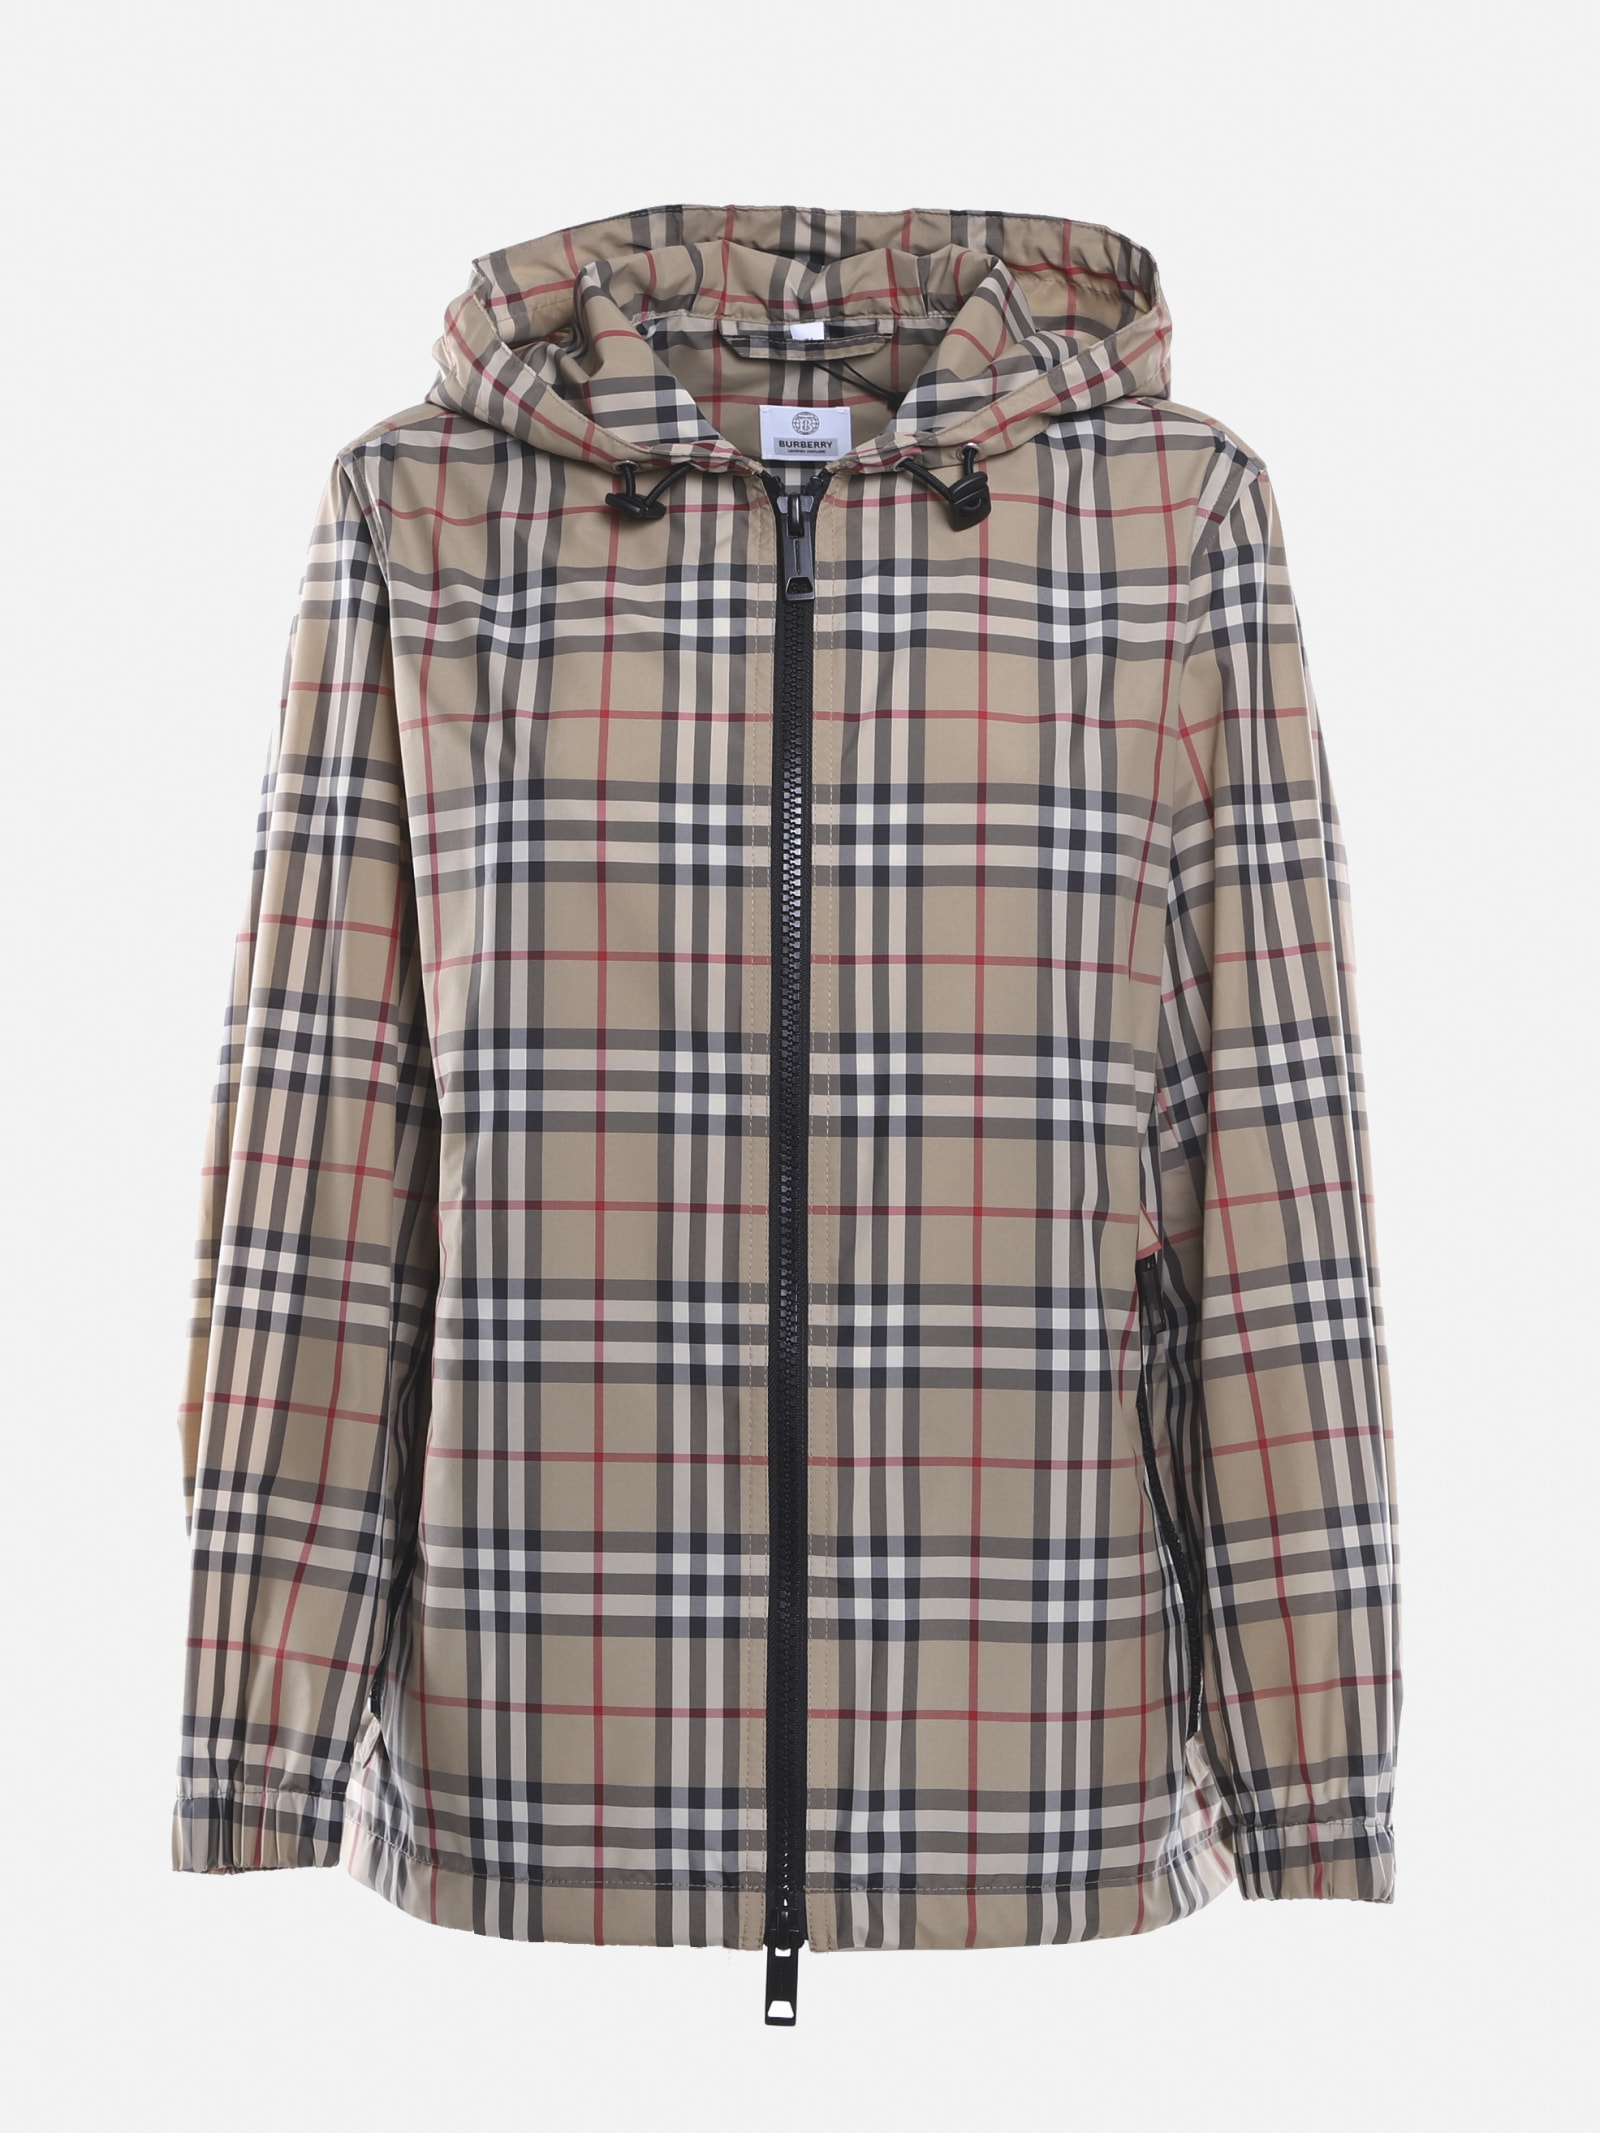 Burberry Taffeta Jacket With All-over Vintage Check Pattern